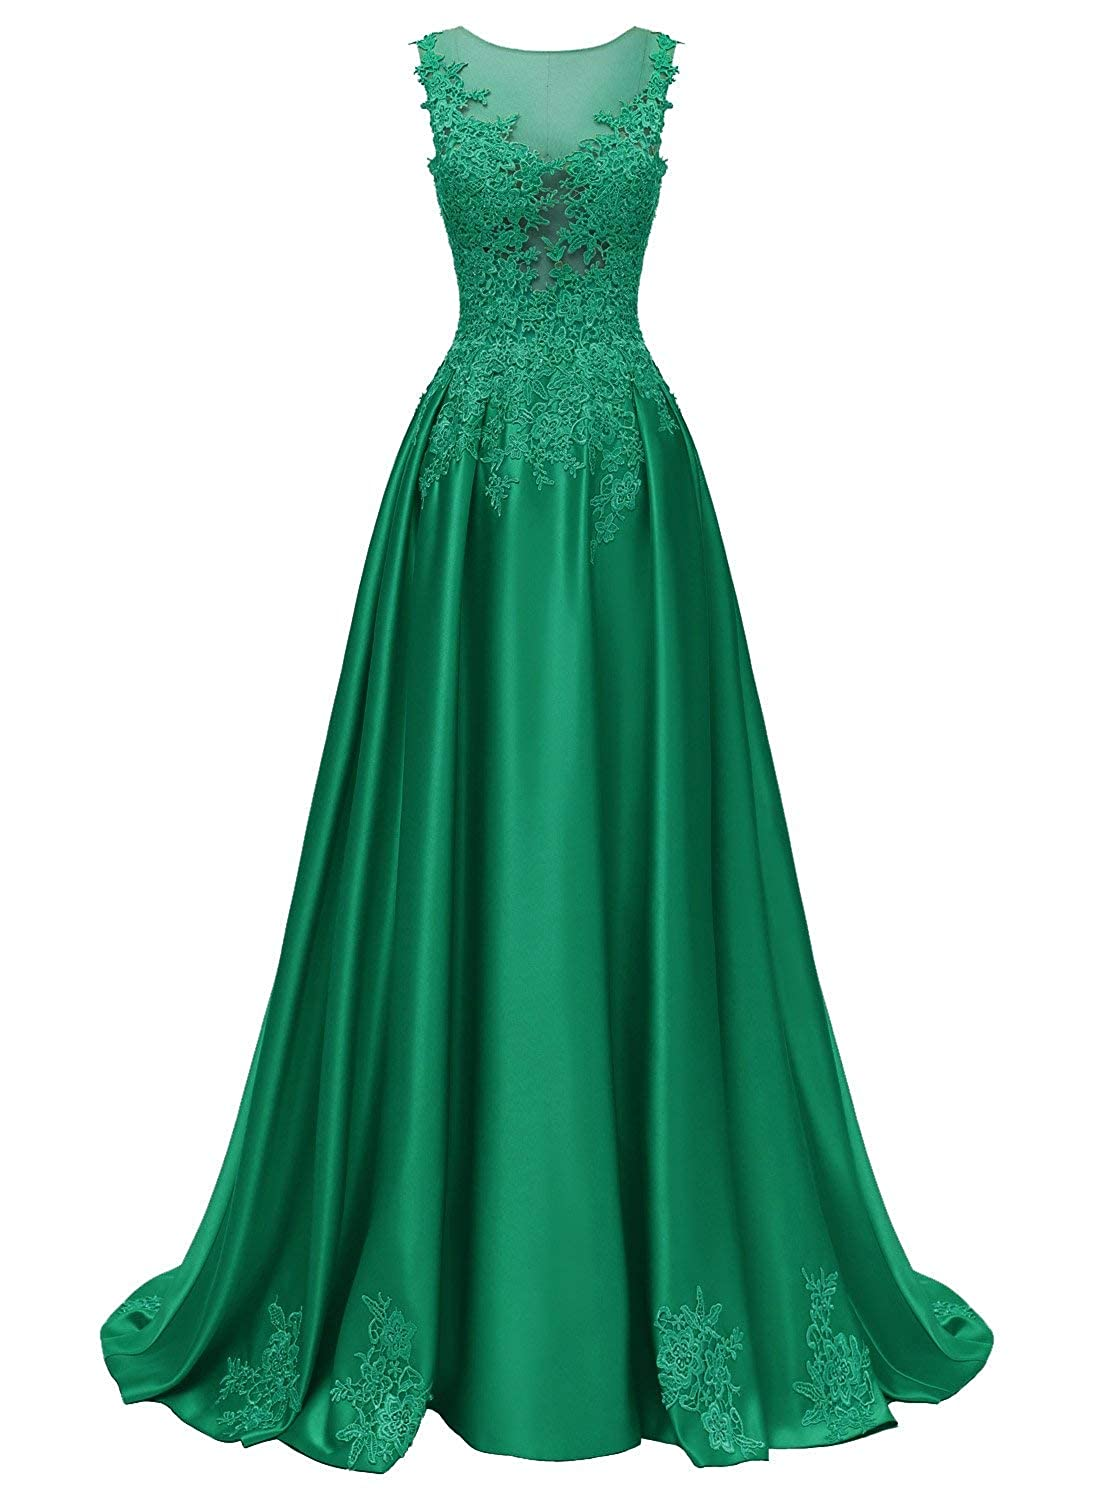 Emerald Green Dressytailor Aline Scoop Long Satin Appliques Beading Prom Dress Formal Evening Gown with Pockets